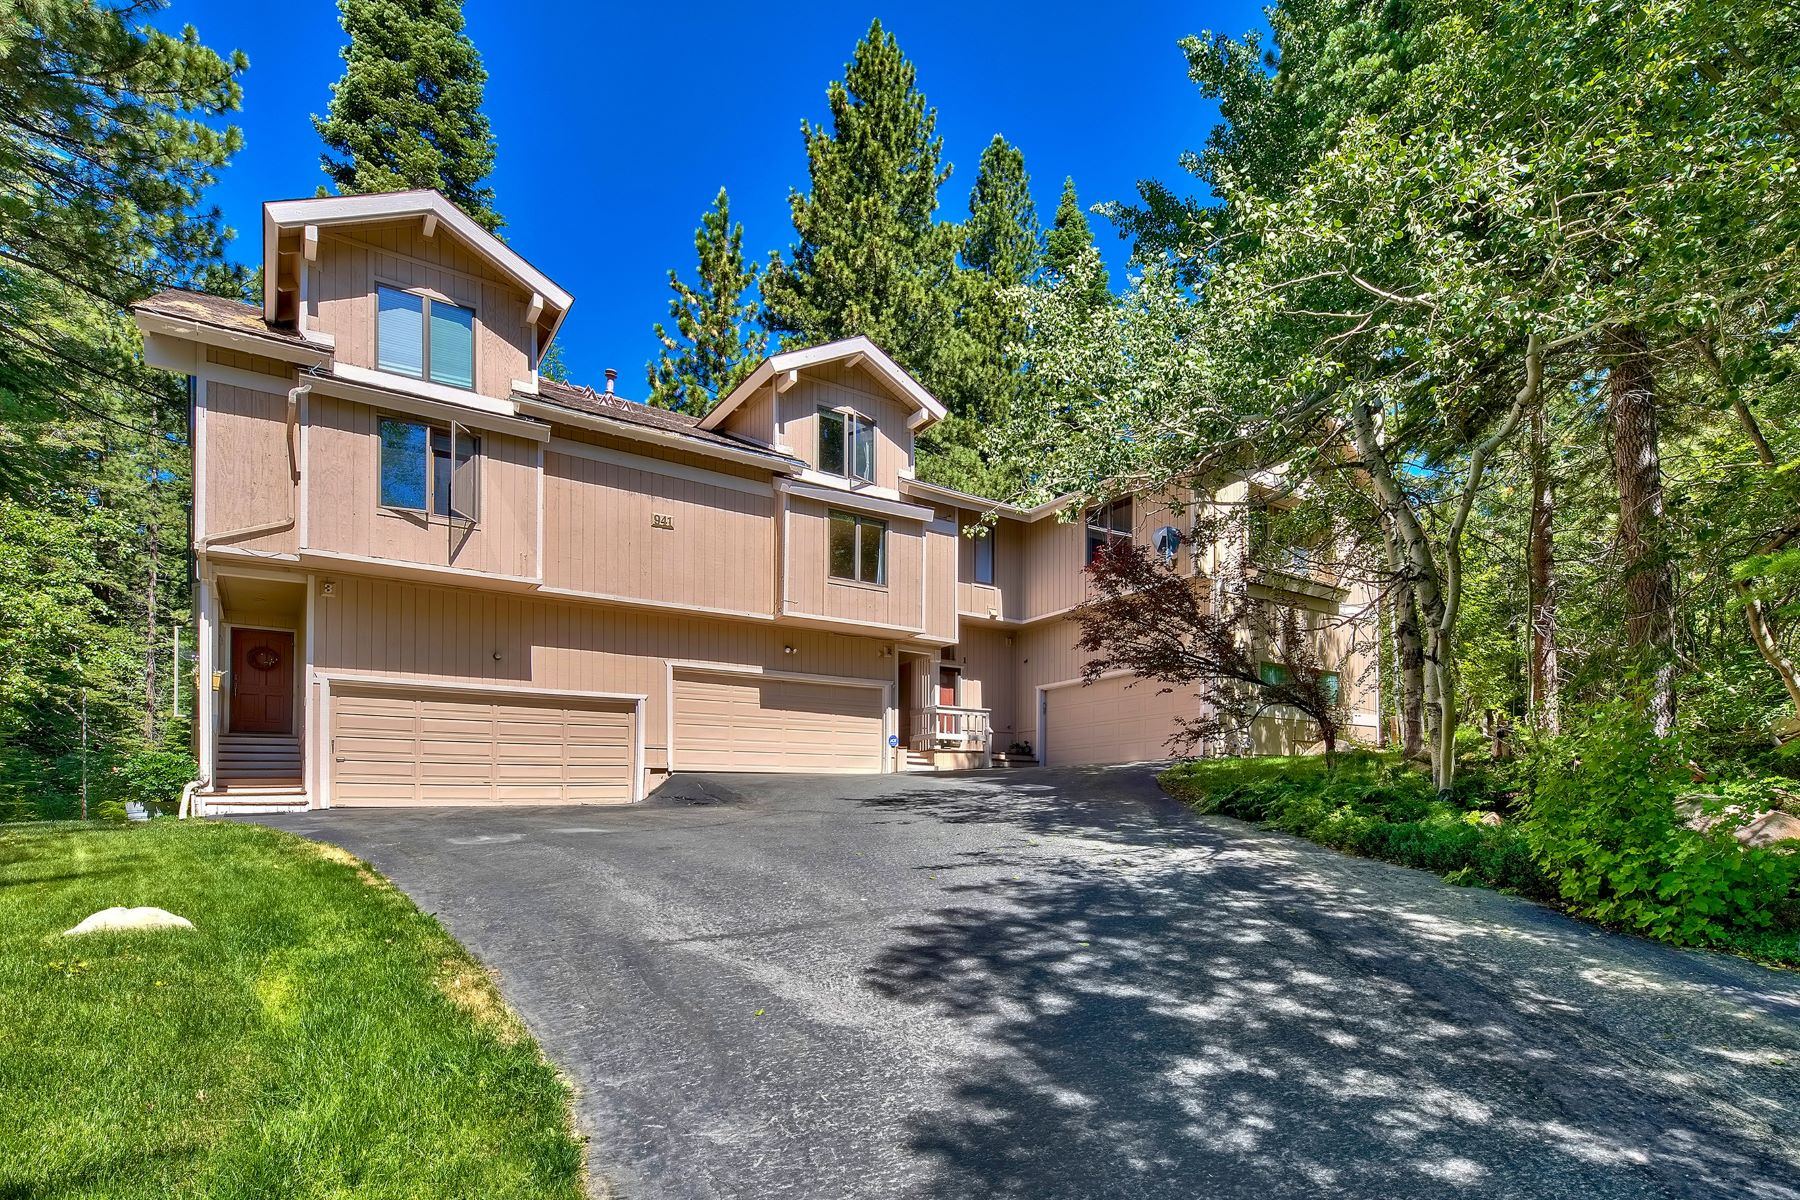 Multi-Family Homes for Active at 941 Divot Court #2, Incline Village, NV 89451 941 Divot Court #2 Incline Village, Nevada 89451 United States